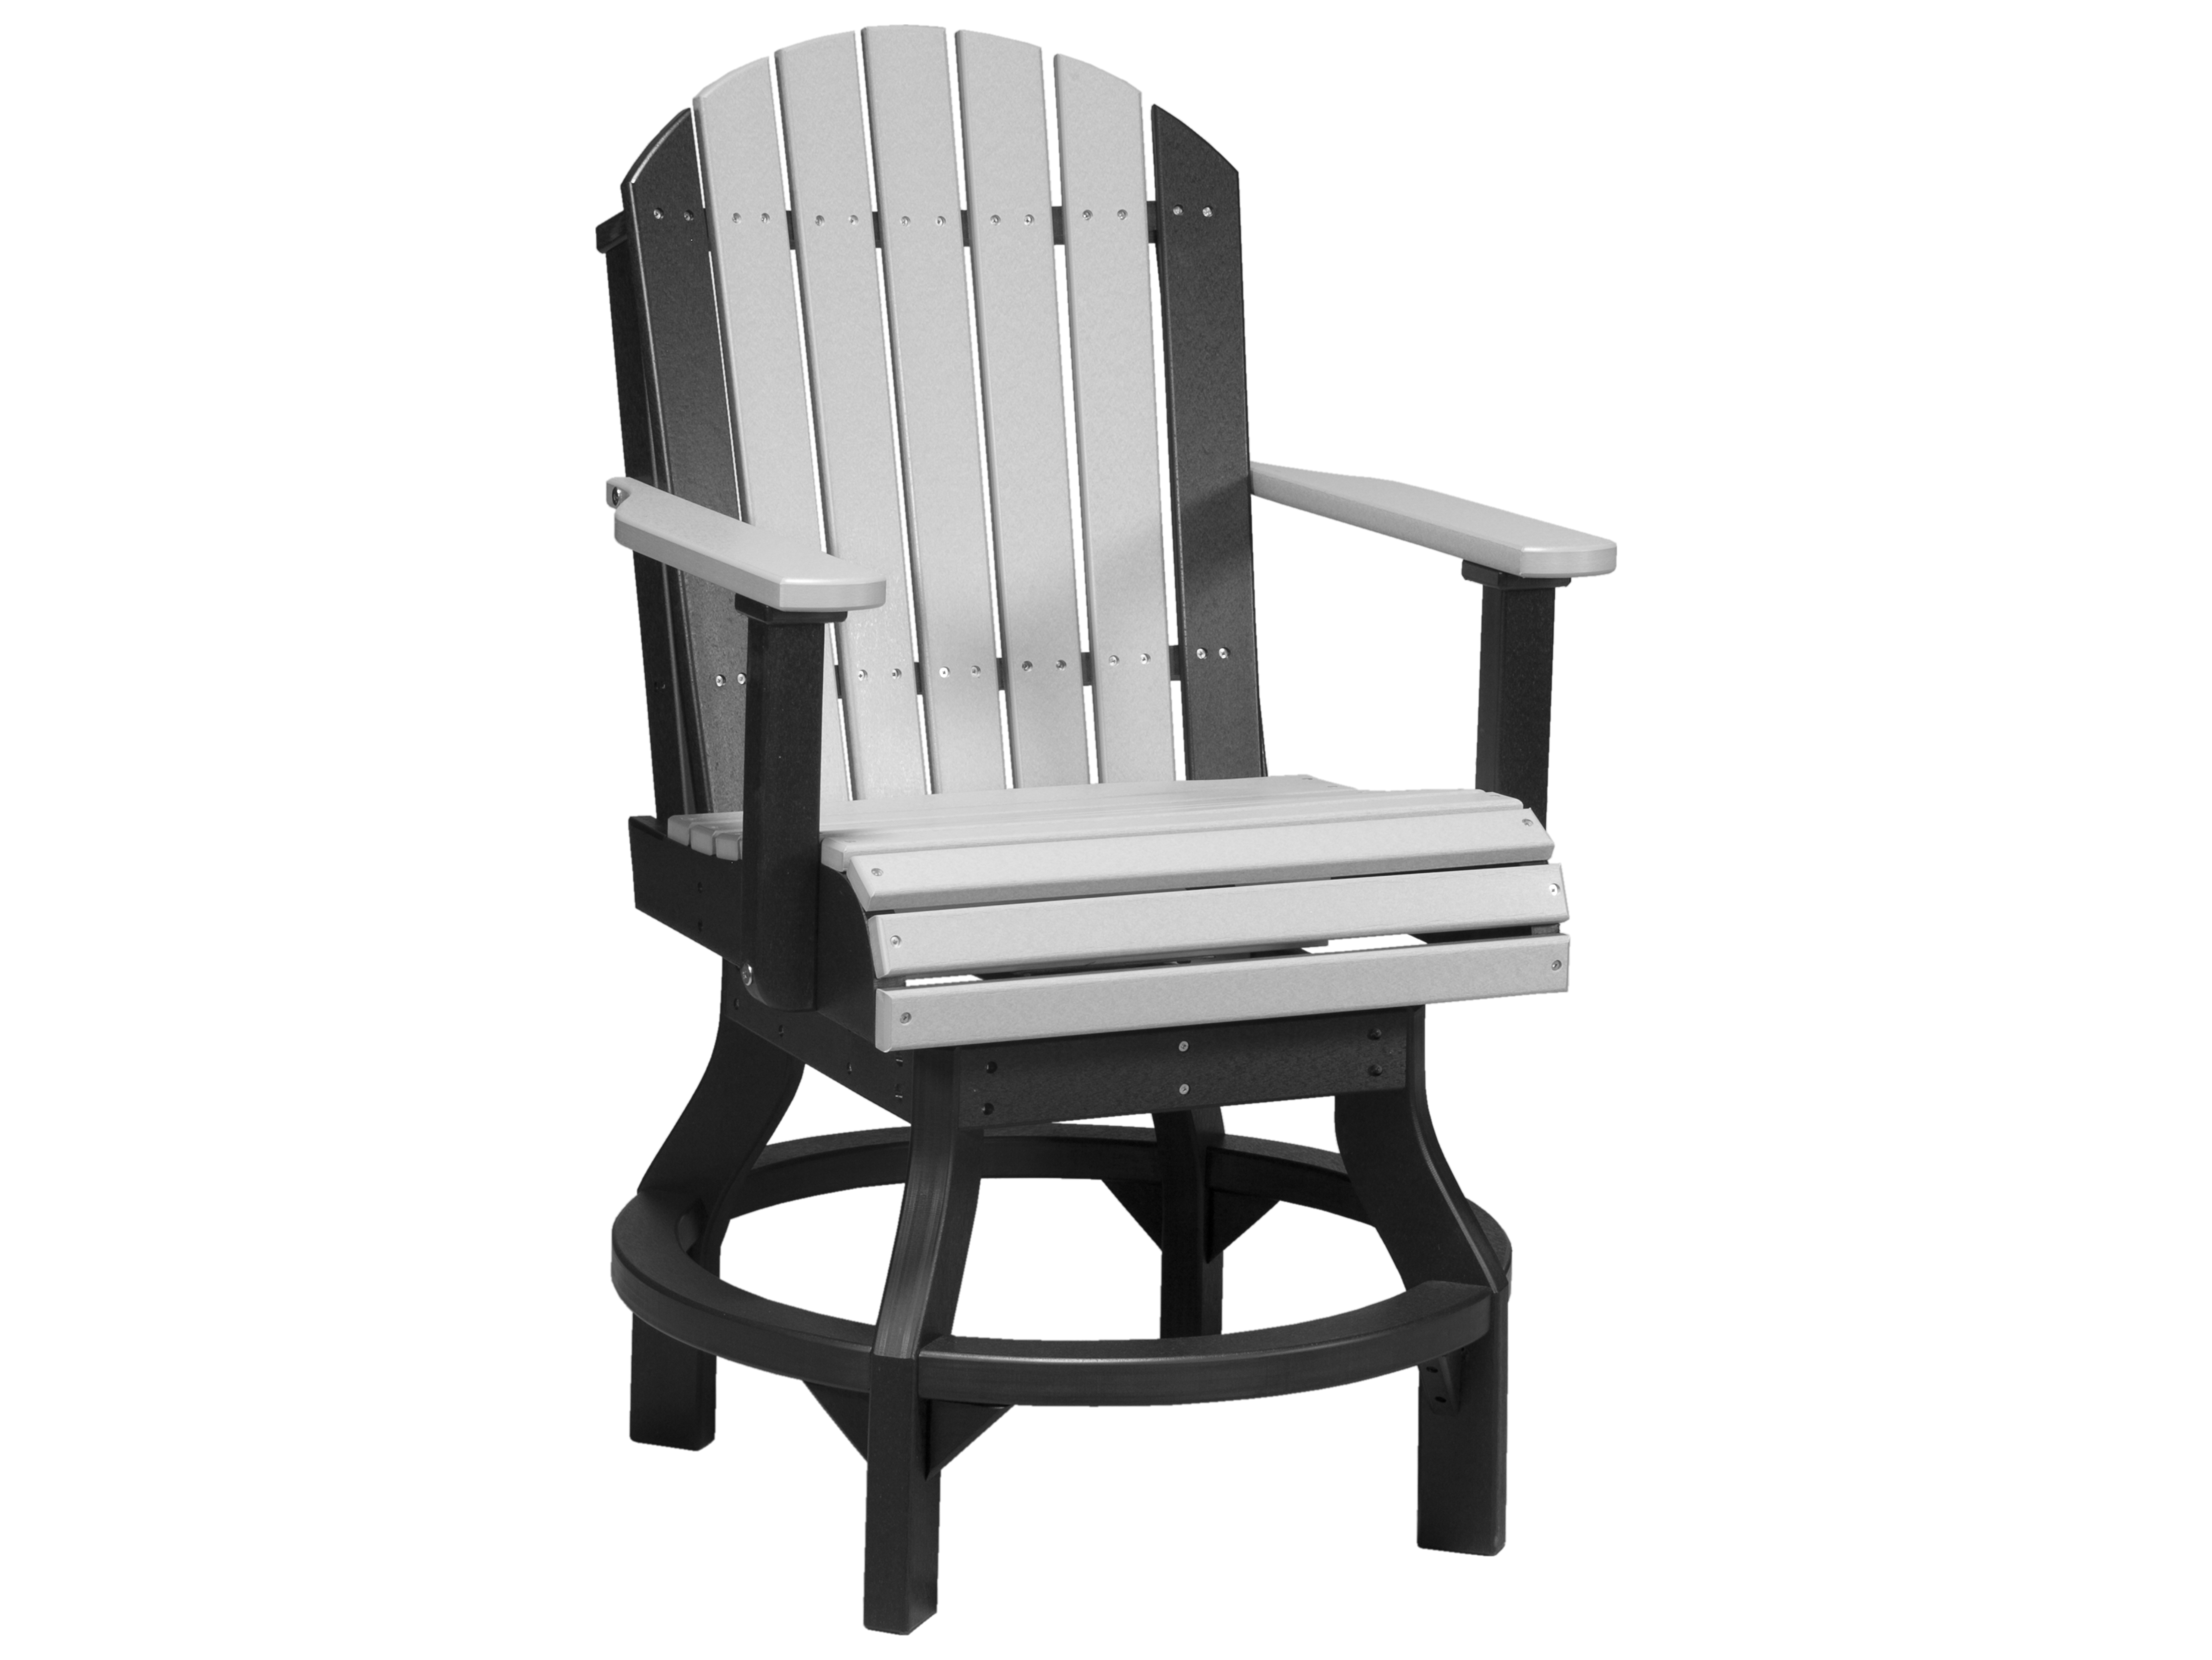 plastic swivel chair heavy duty resin adirondack chairs luxcraft recycled counter height